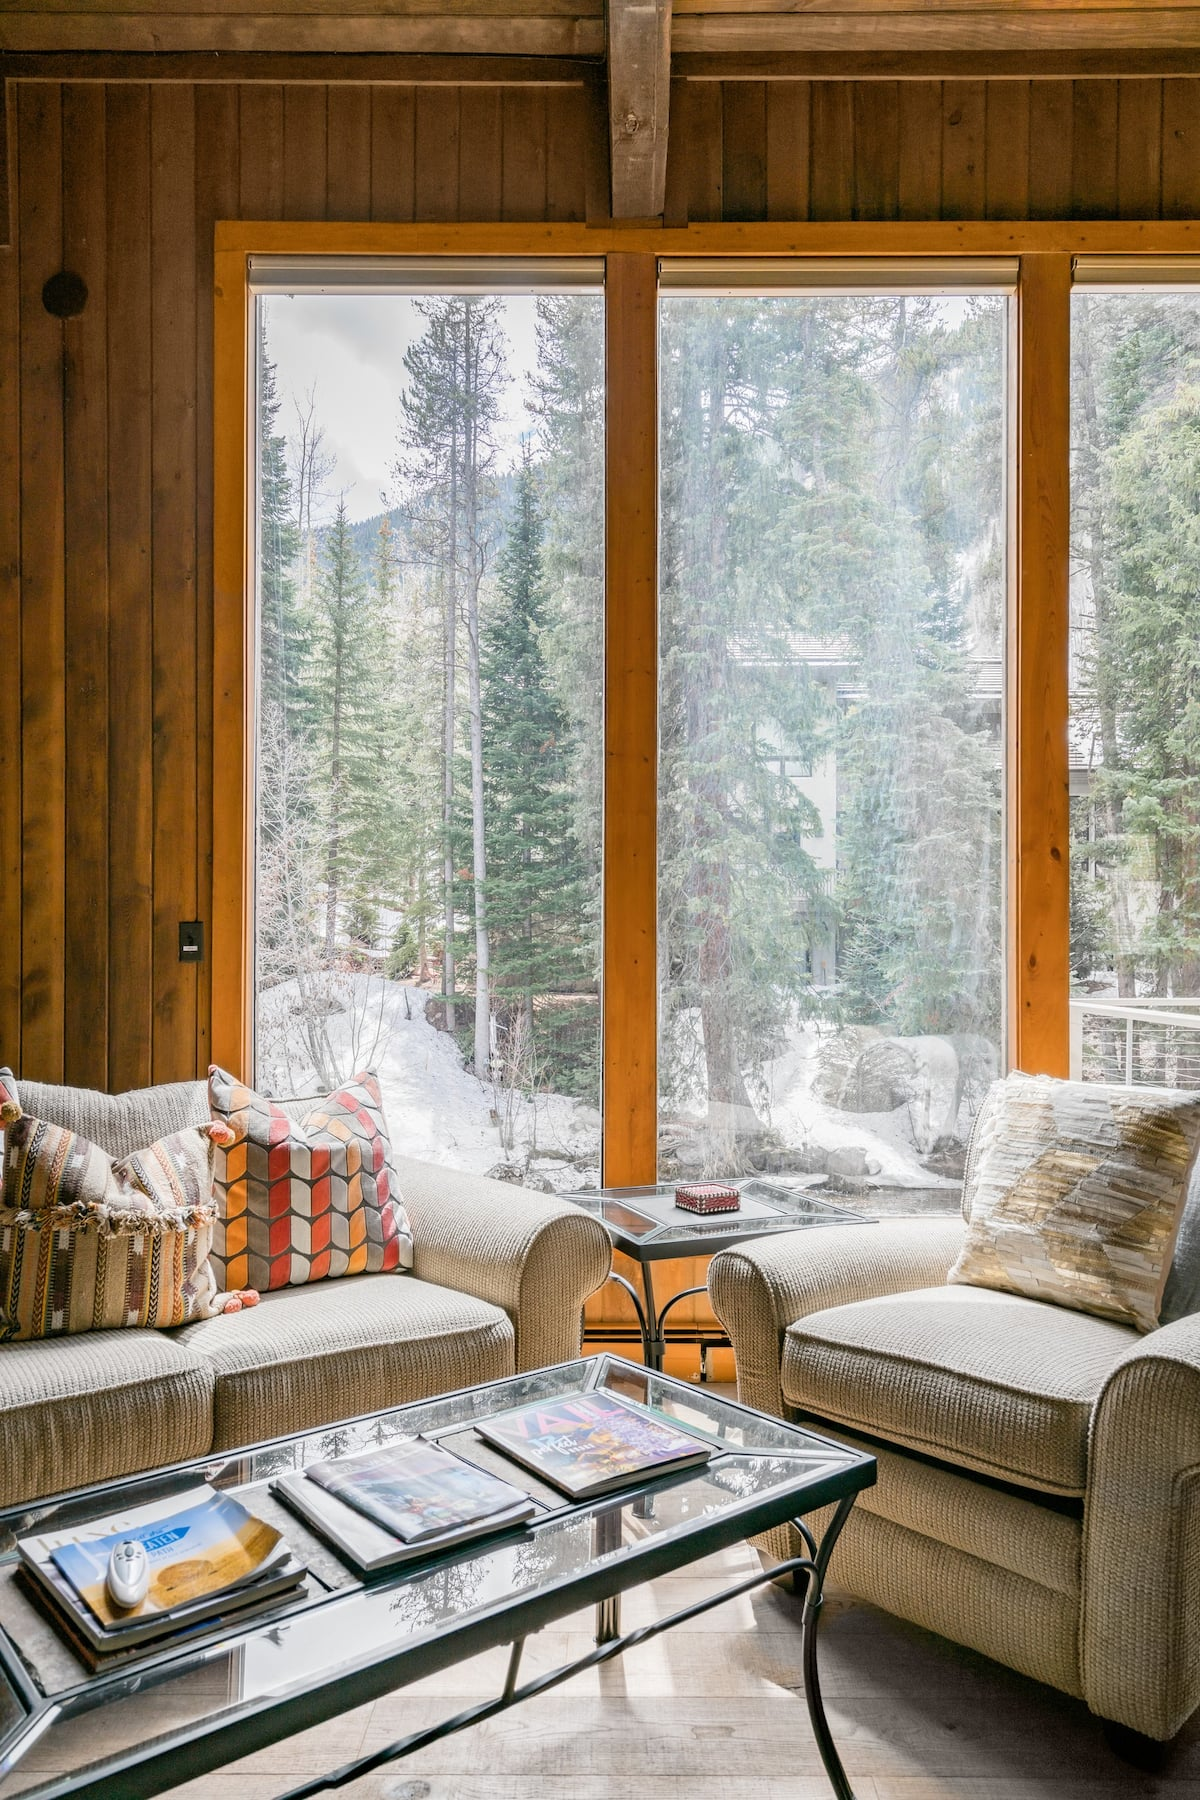 Family Style Escape Near Ski Hills and a Fly Fishing Creek